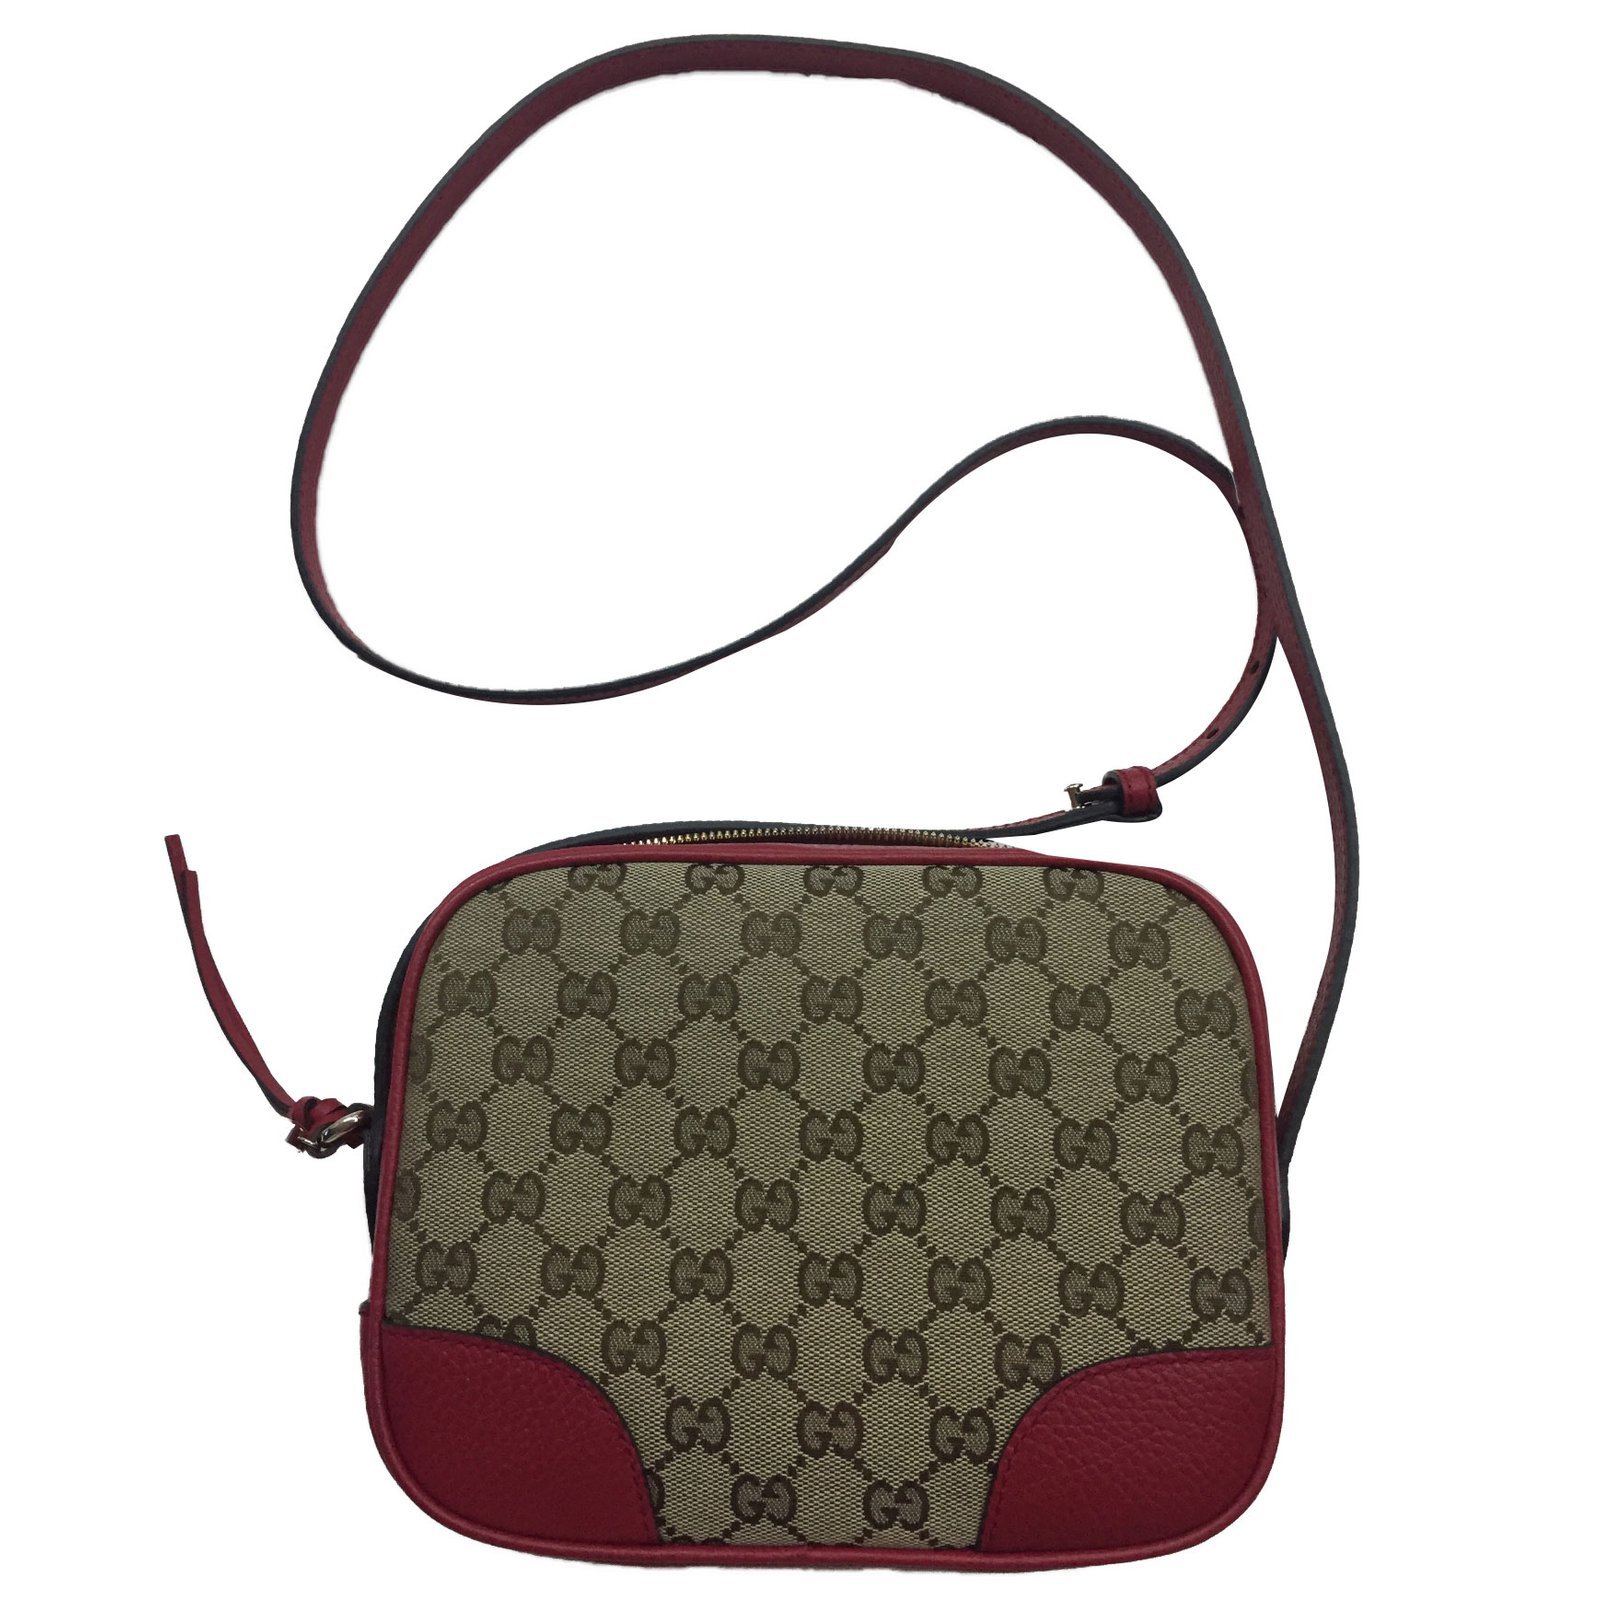 9b911ccf645d Gucci Soho disco bag Handbags Leather Red ref.42666 - Joli Closet